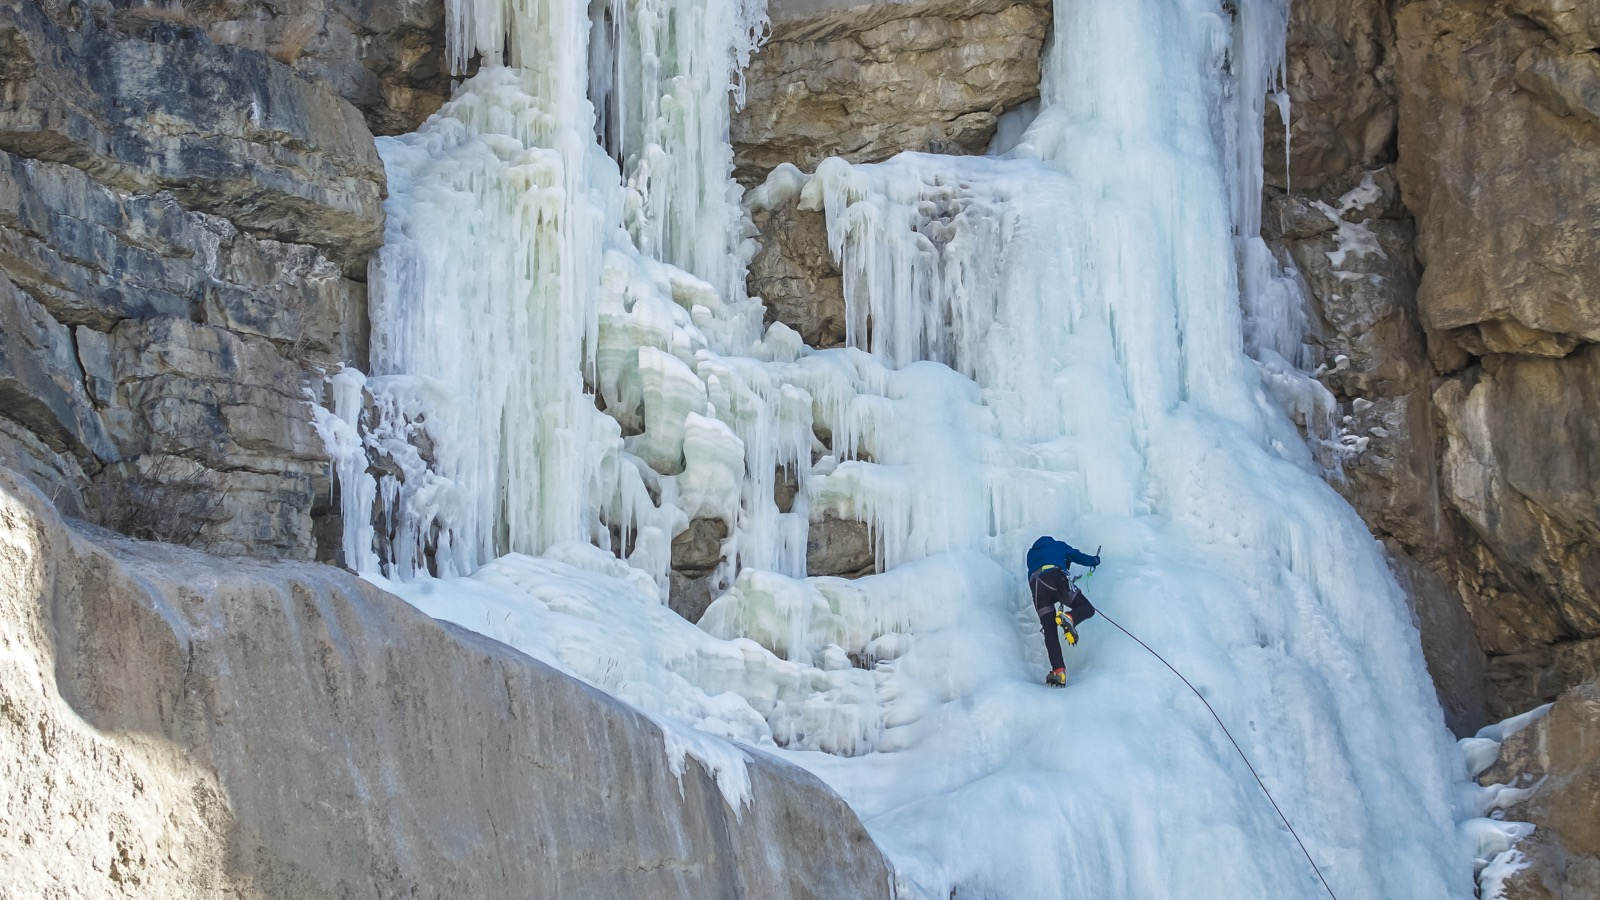 Still from The Fall. Pranav Rawat leading on the second pitch. Shela waterfall (260 ft, WI4). Near Kaza town, Spiti, Himachal Pradesh. Jan 2016. Photo © Abhijeet Singh